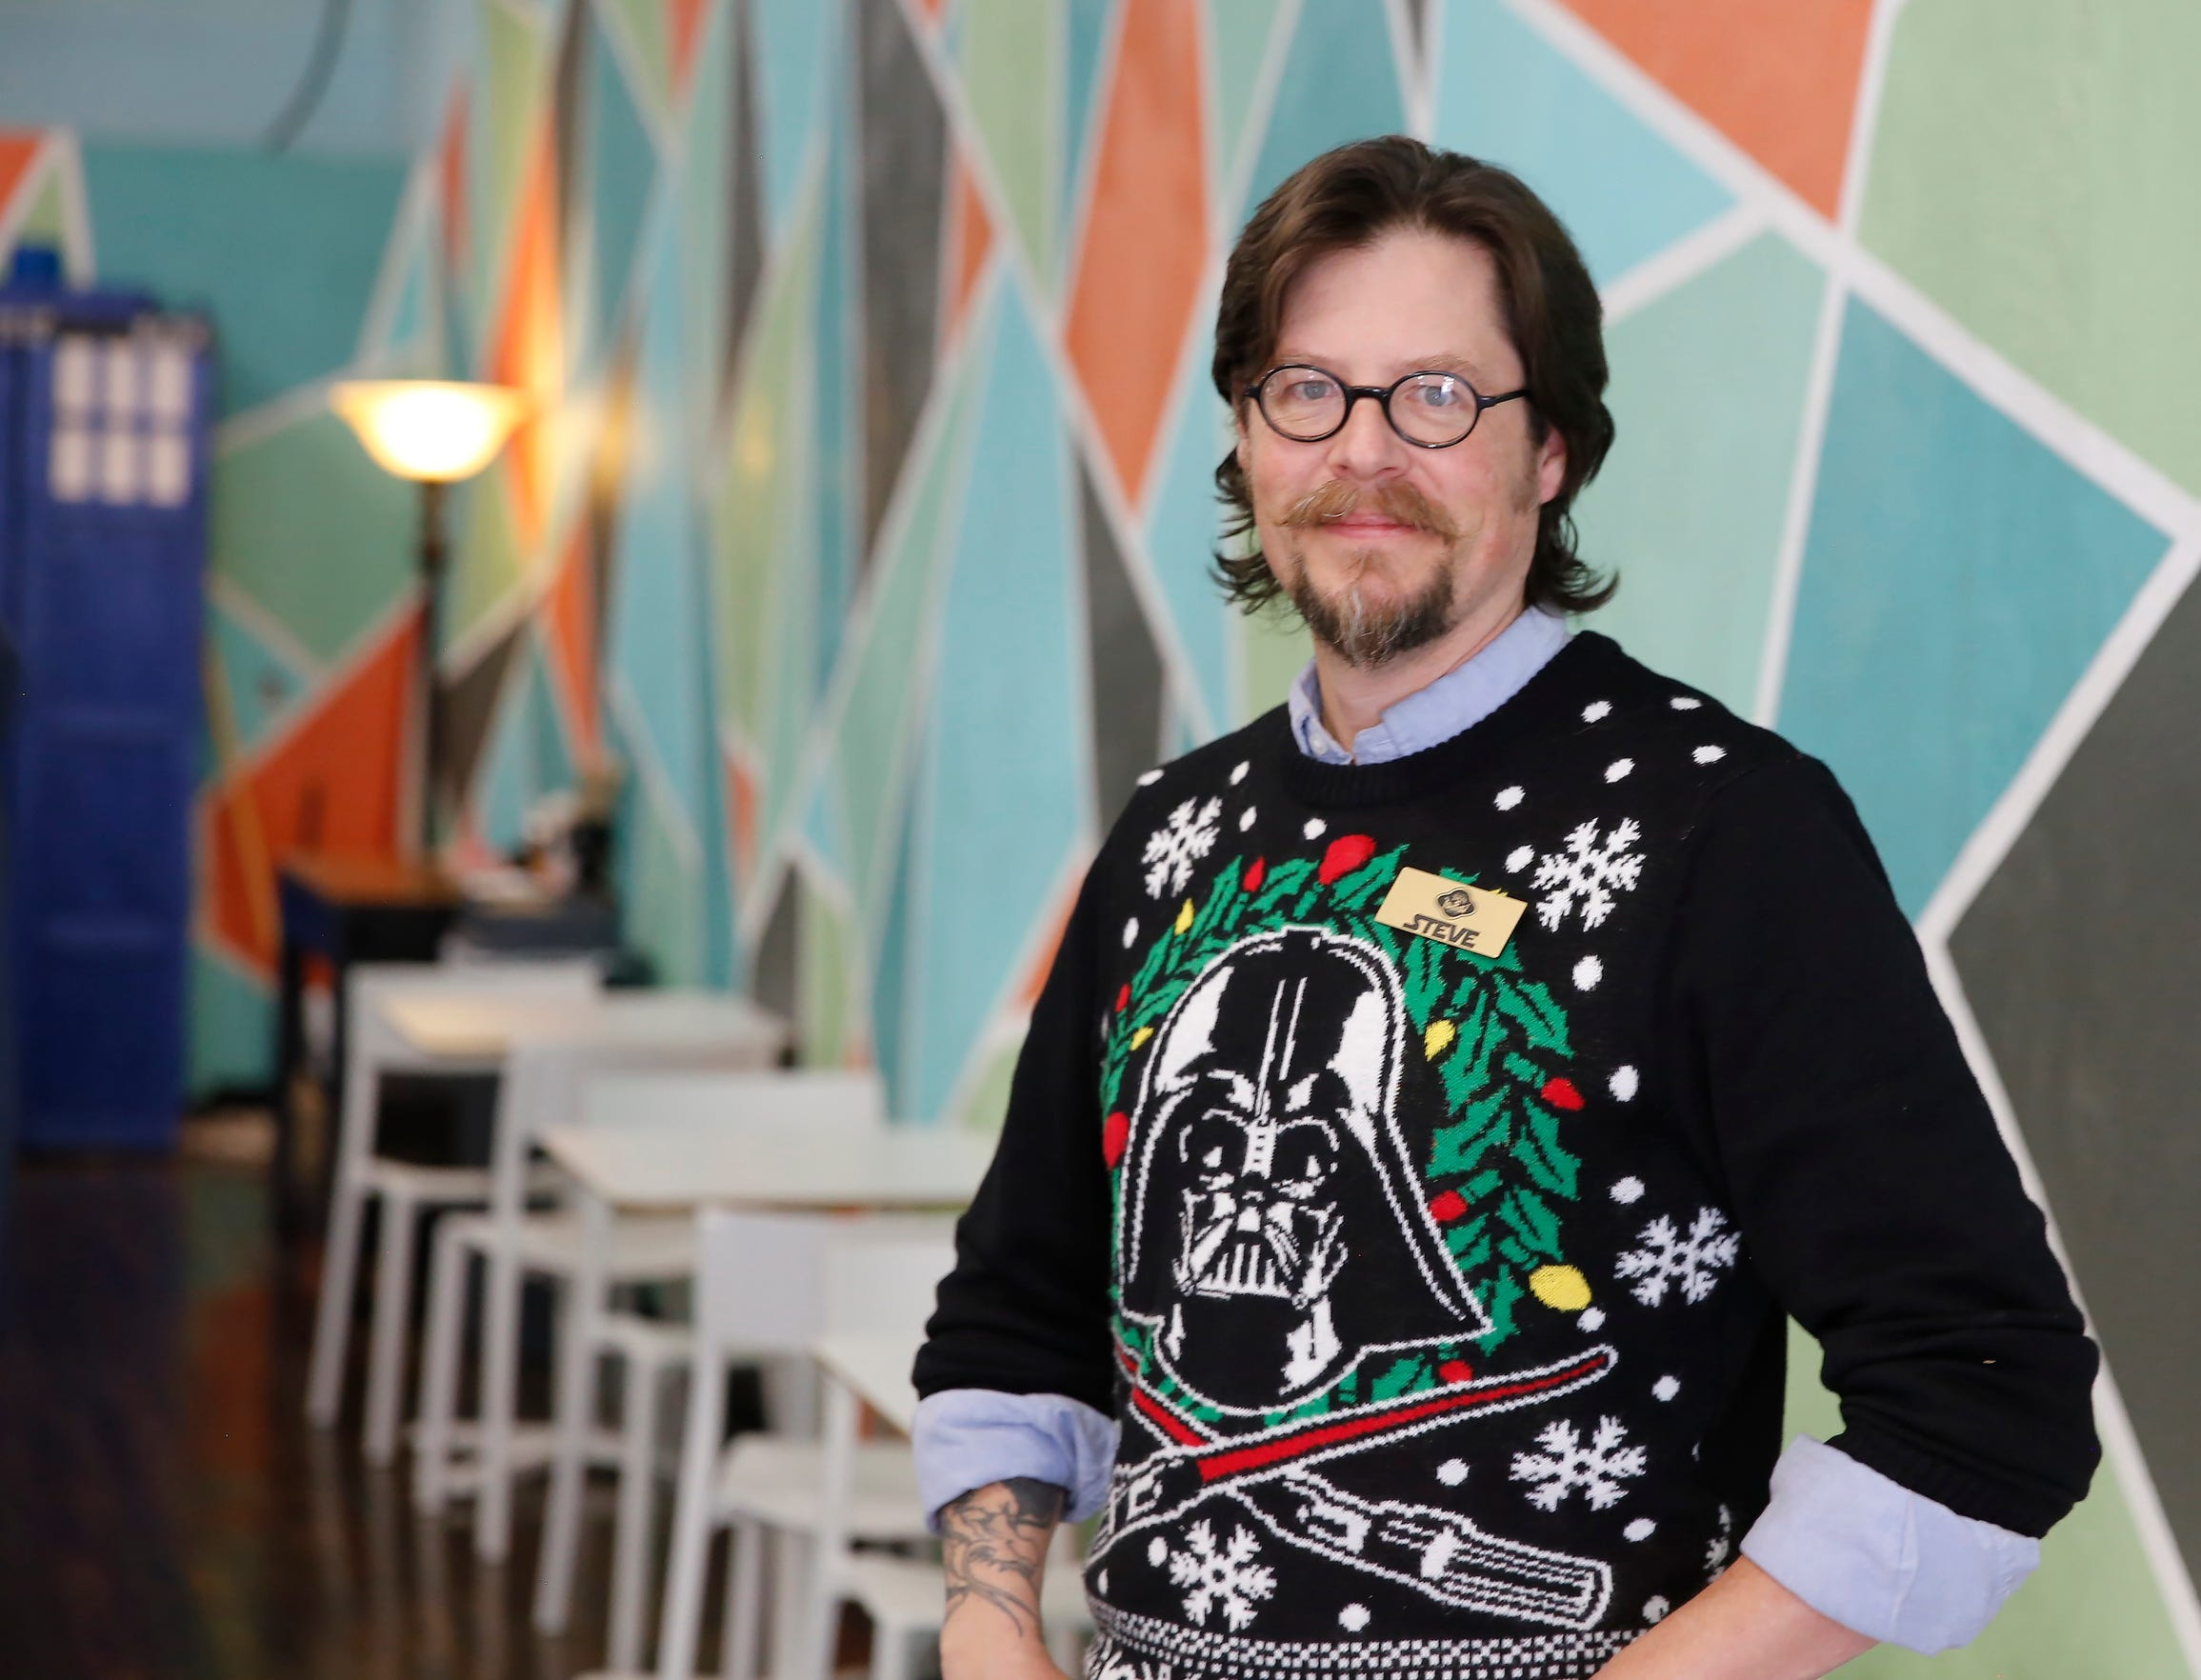 Tales of Tomorrow co-owner Steve Clark sported his light-up holiday sweater on the first day of the business' long-awaited Cosmic Cafe, which had a soft opening with coffee and baked goods on the retail store's first anniversary during the Small Business Saturday event in downtown Farmington. The cafe will be open on Saturdays for now featuring baked goods created by co-owner Lauren Harris.